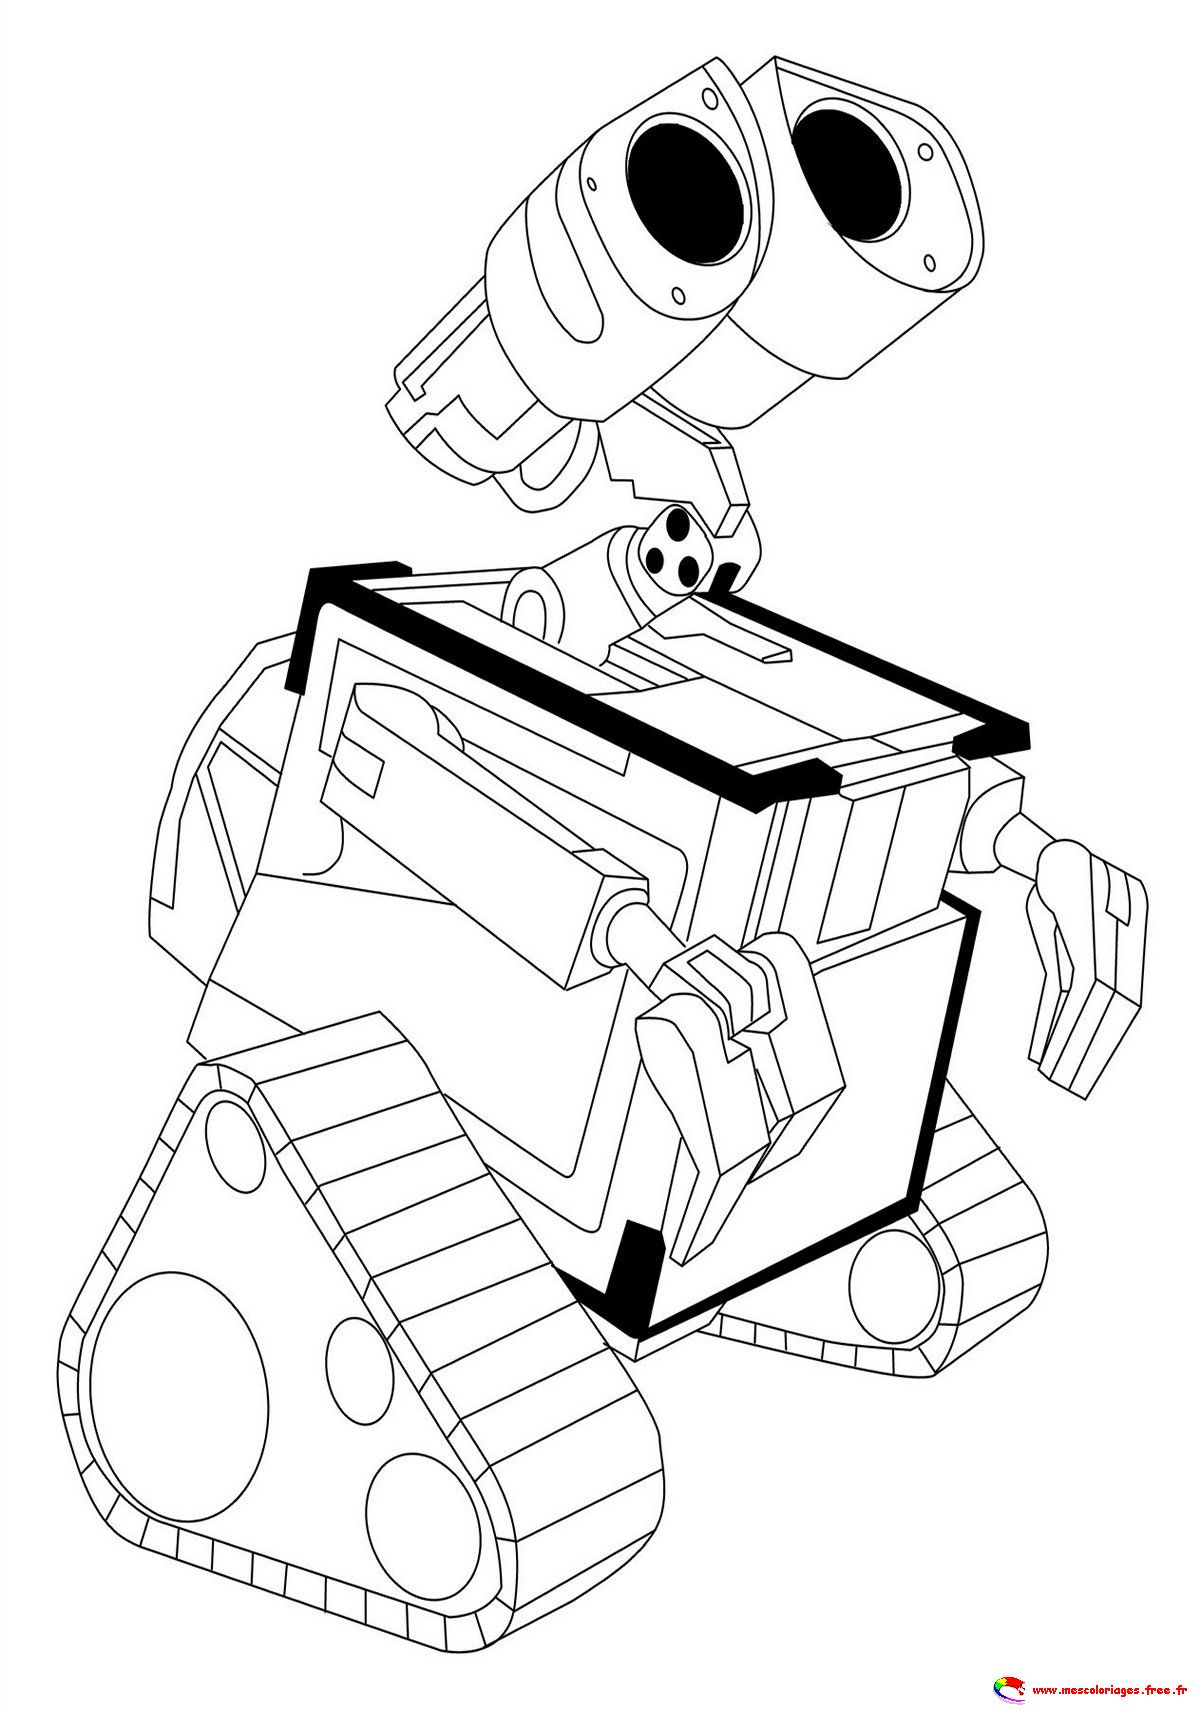 Free Disey-Pixar's Wall E coloring page to download